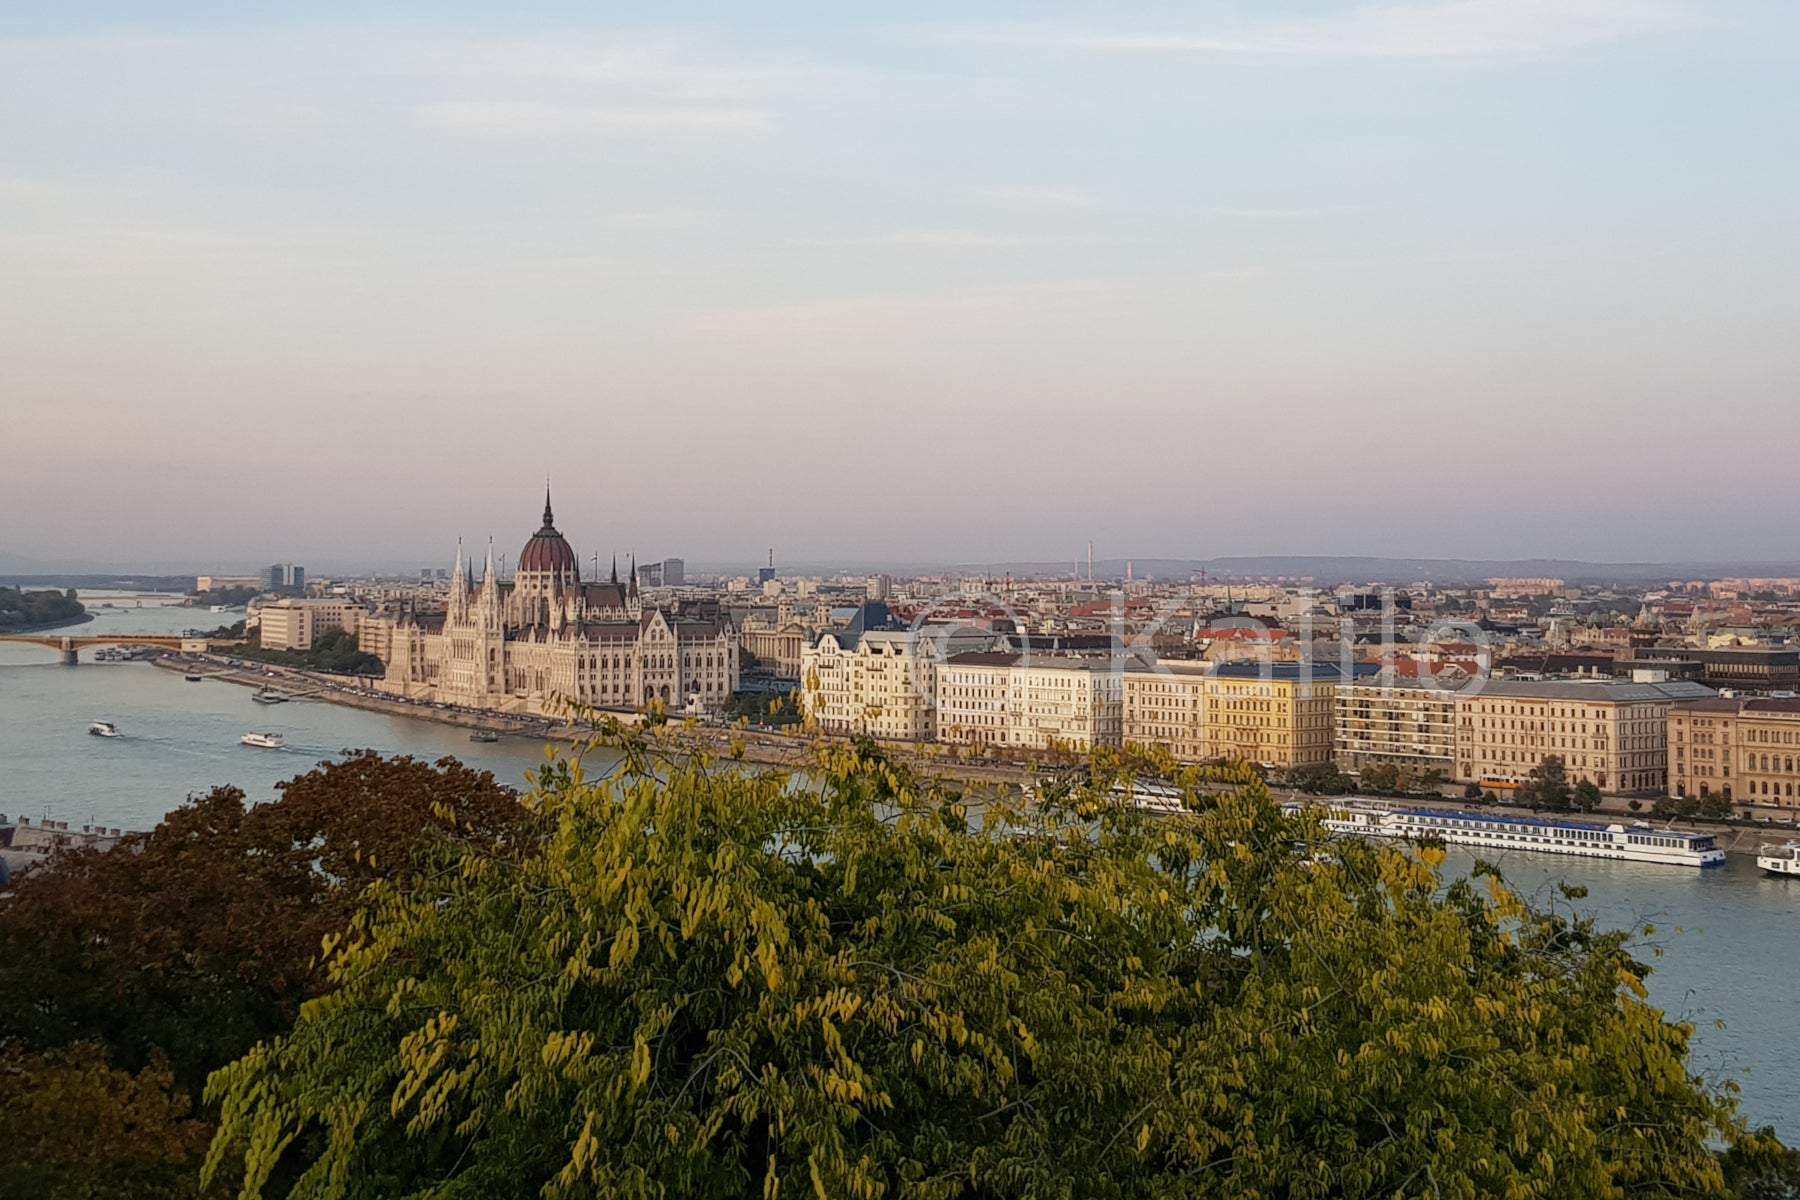 View of Pest from Buda - Budapest, Hungary